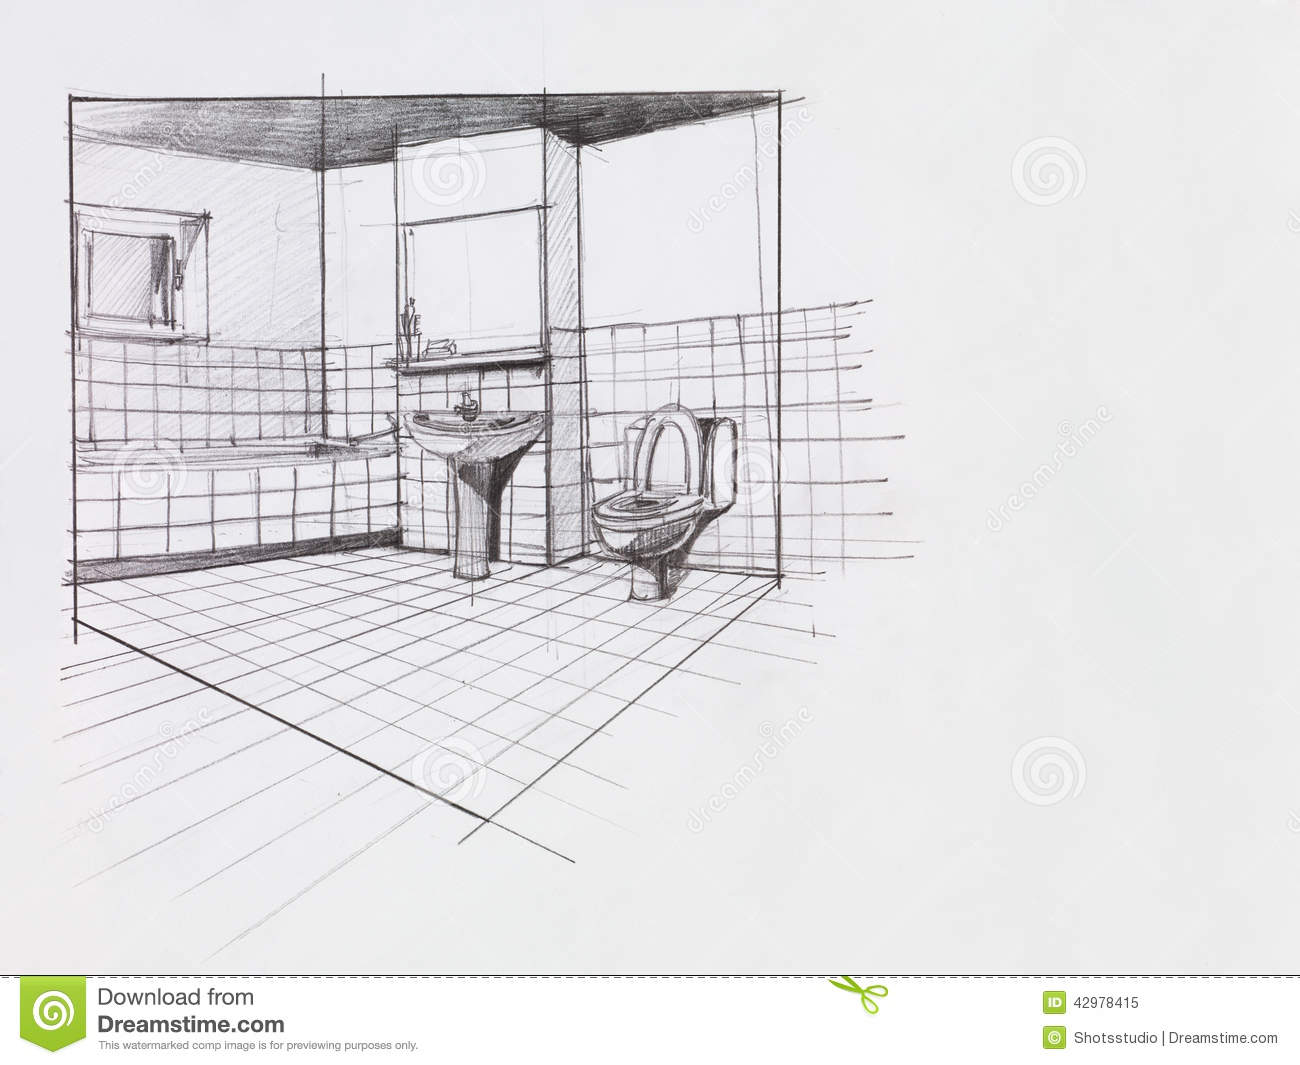 Rizk auto ra  2009 as well Office Plan Design Layout furthermore Wise Renovation Turns Old Jewellery Retailer Into A Tiny Contemporary Apartment moreover Thing furthermore 30028. on modern interior design